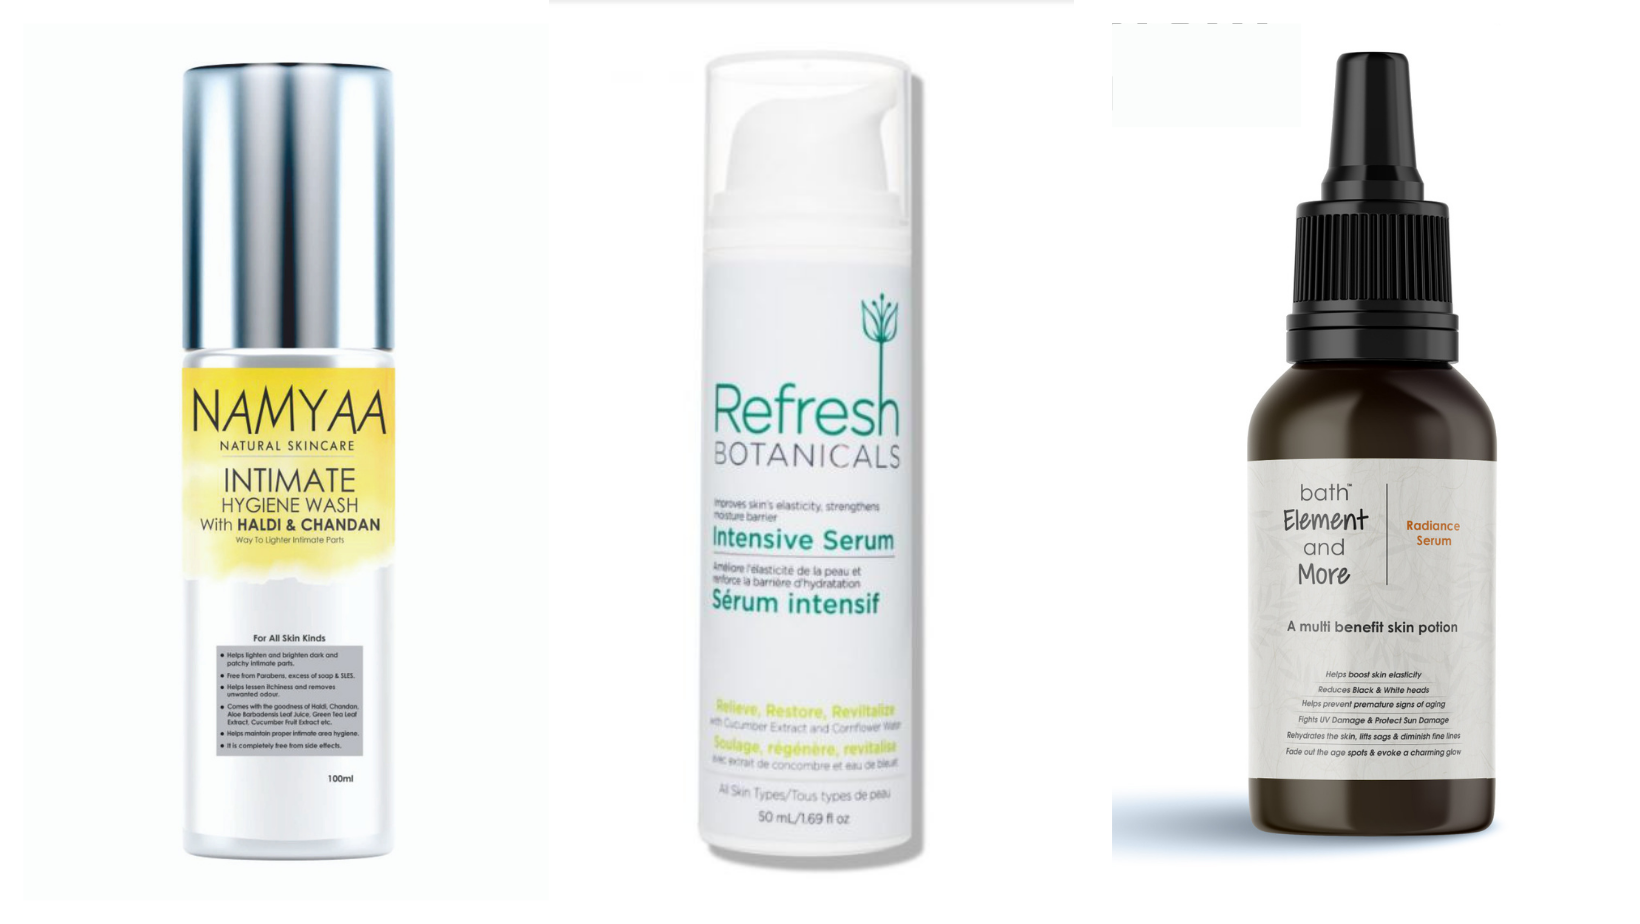 The Best Organic Skincare Brands and What to Buy From Them